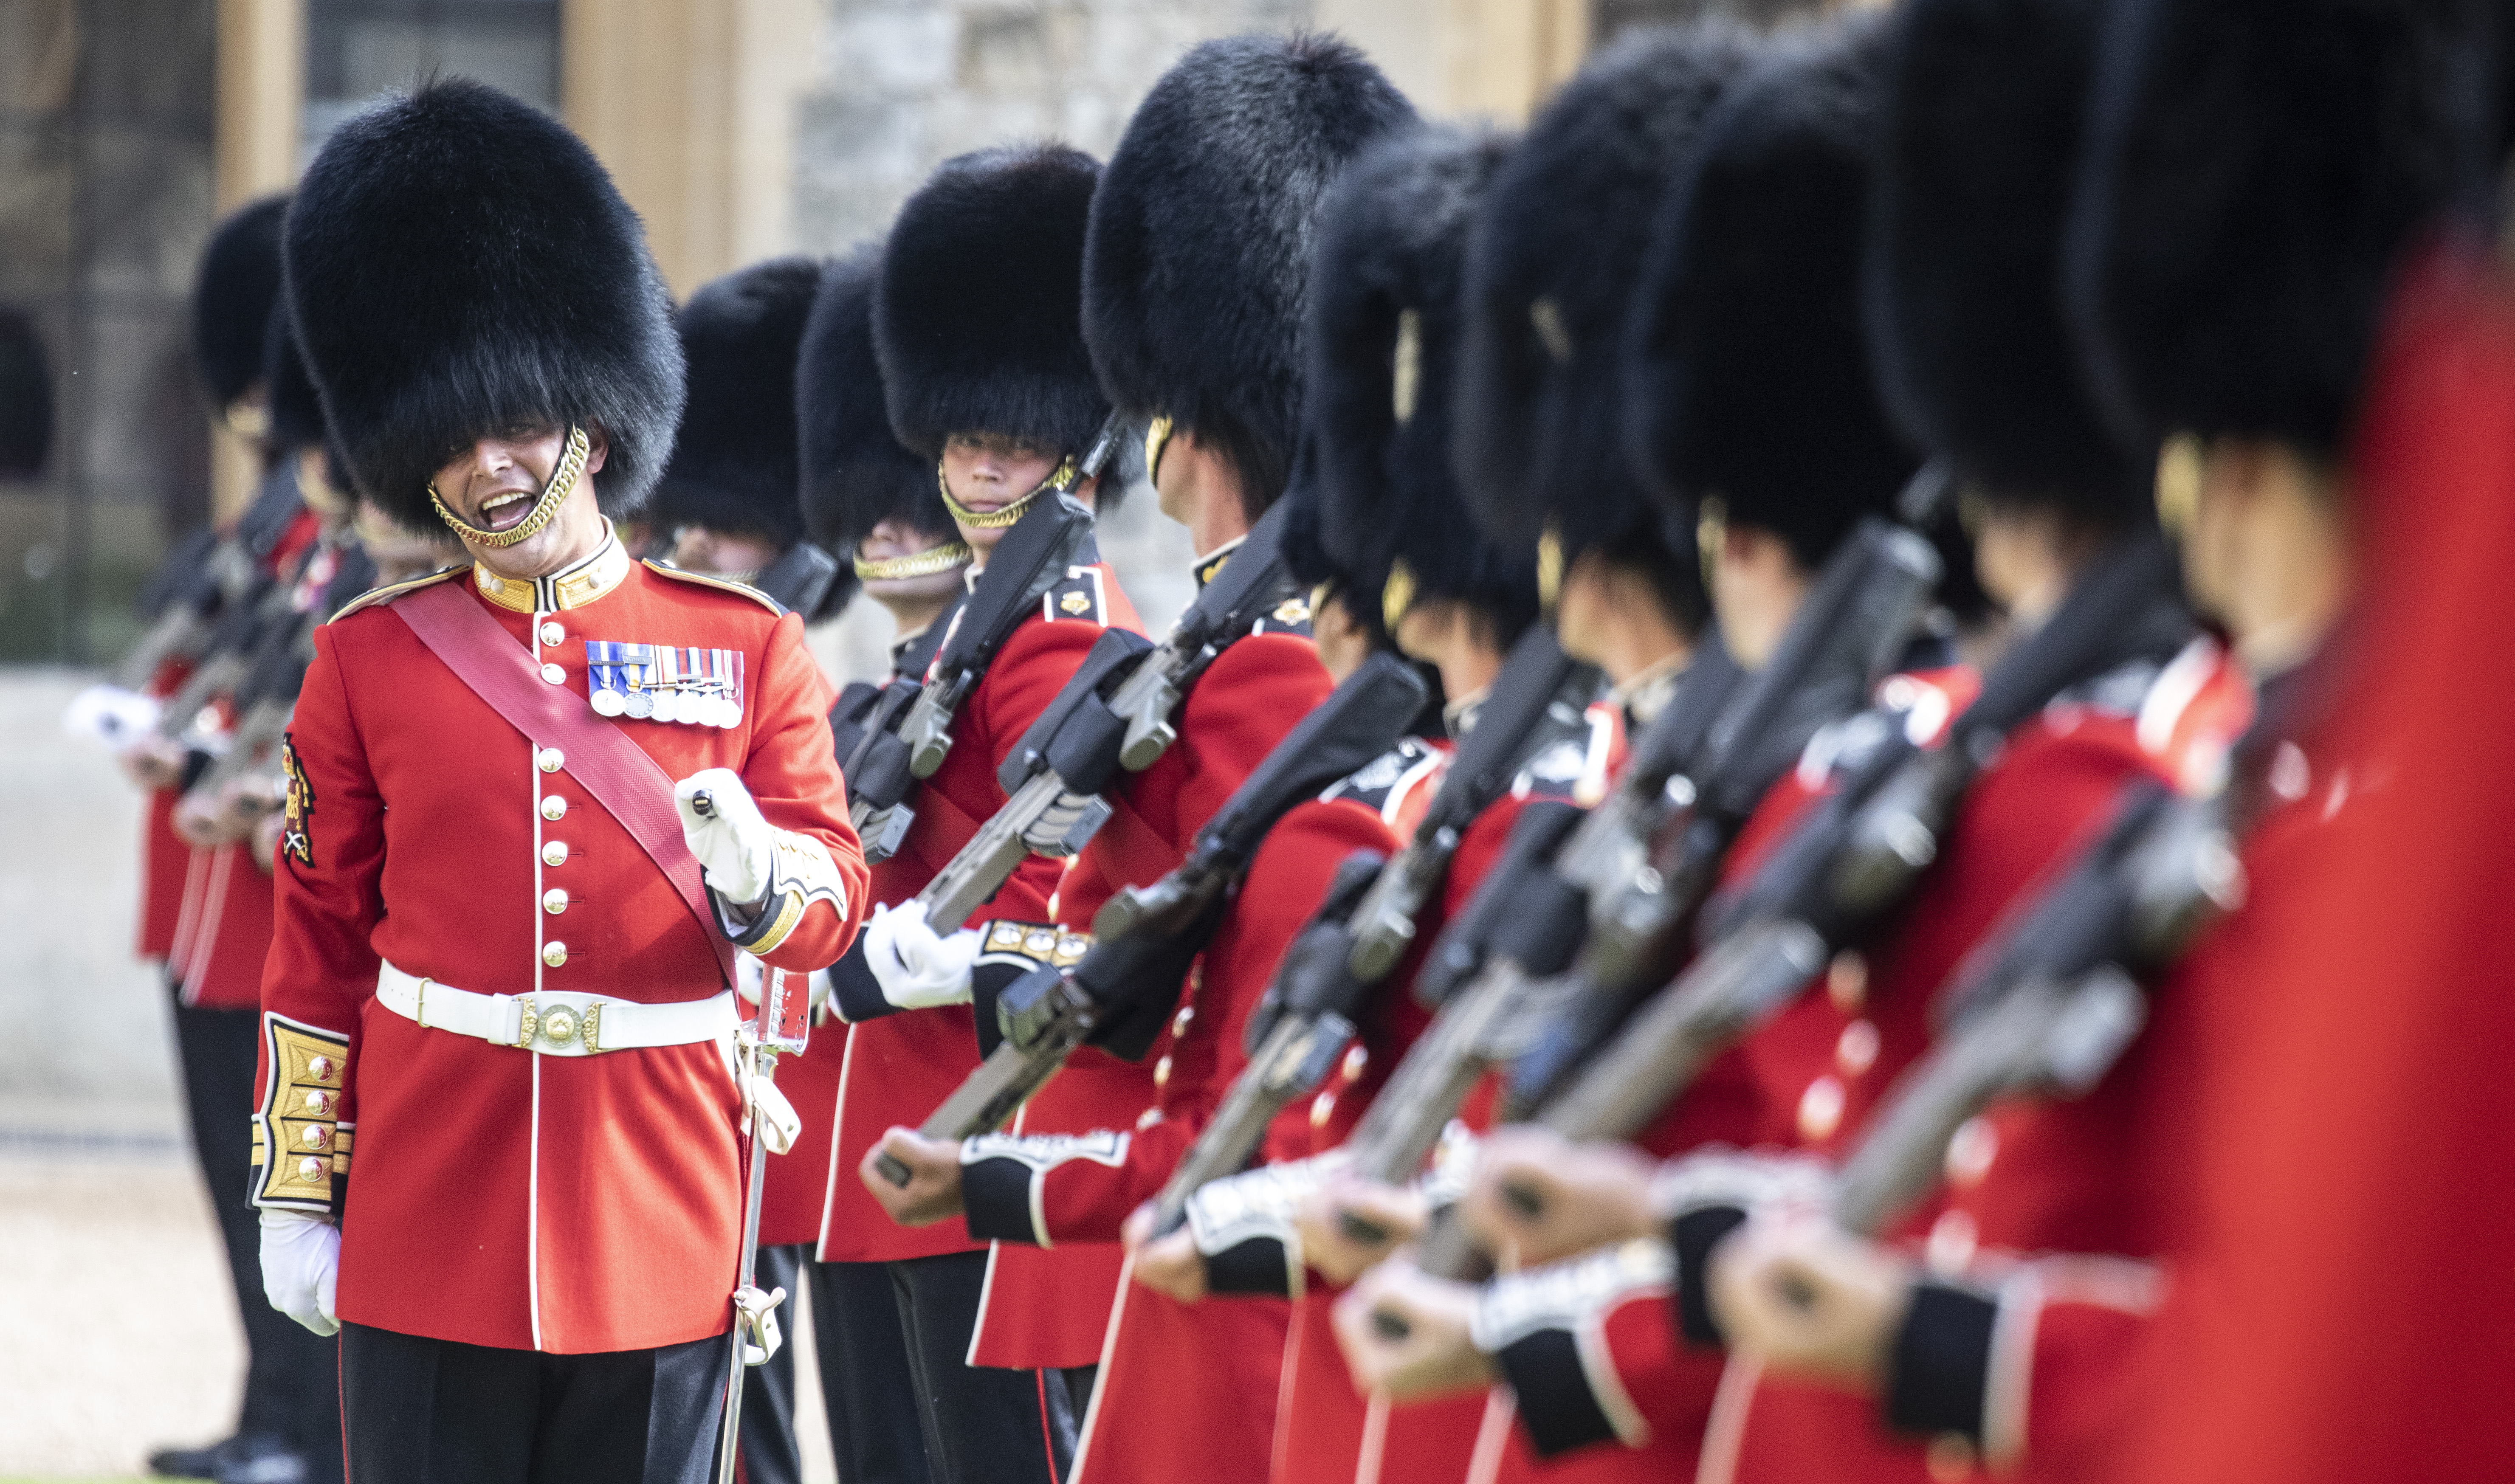 <p>WINDSOR, ENGLAND - JUNE 13: A warrant officer shouts instructions as he inspects the line of a Guard of Honour formed of The Queen's Company First Battalion Grenadier Guards at Windsor castle on June 11, 2021 in Windsor, England.  Queen Elizabeth II hosts US President, Joe Biden and First Lady, Dr Jill Biden, at Windsor Castle. The President arrived from Cornwall where he attended the G7 Leader's Summit and will travel on to Brussels for a meeting of NATO Allies and later in the week he will meet President of Russia, Vladimir Putin. (Photo by Richard Pohle-WPA Pool/Getty Images)</p>